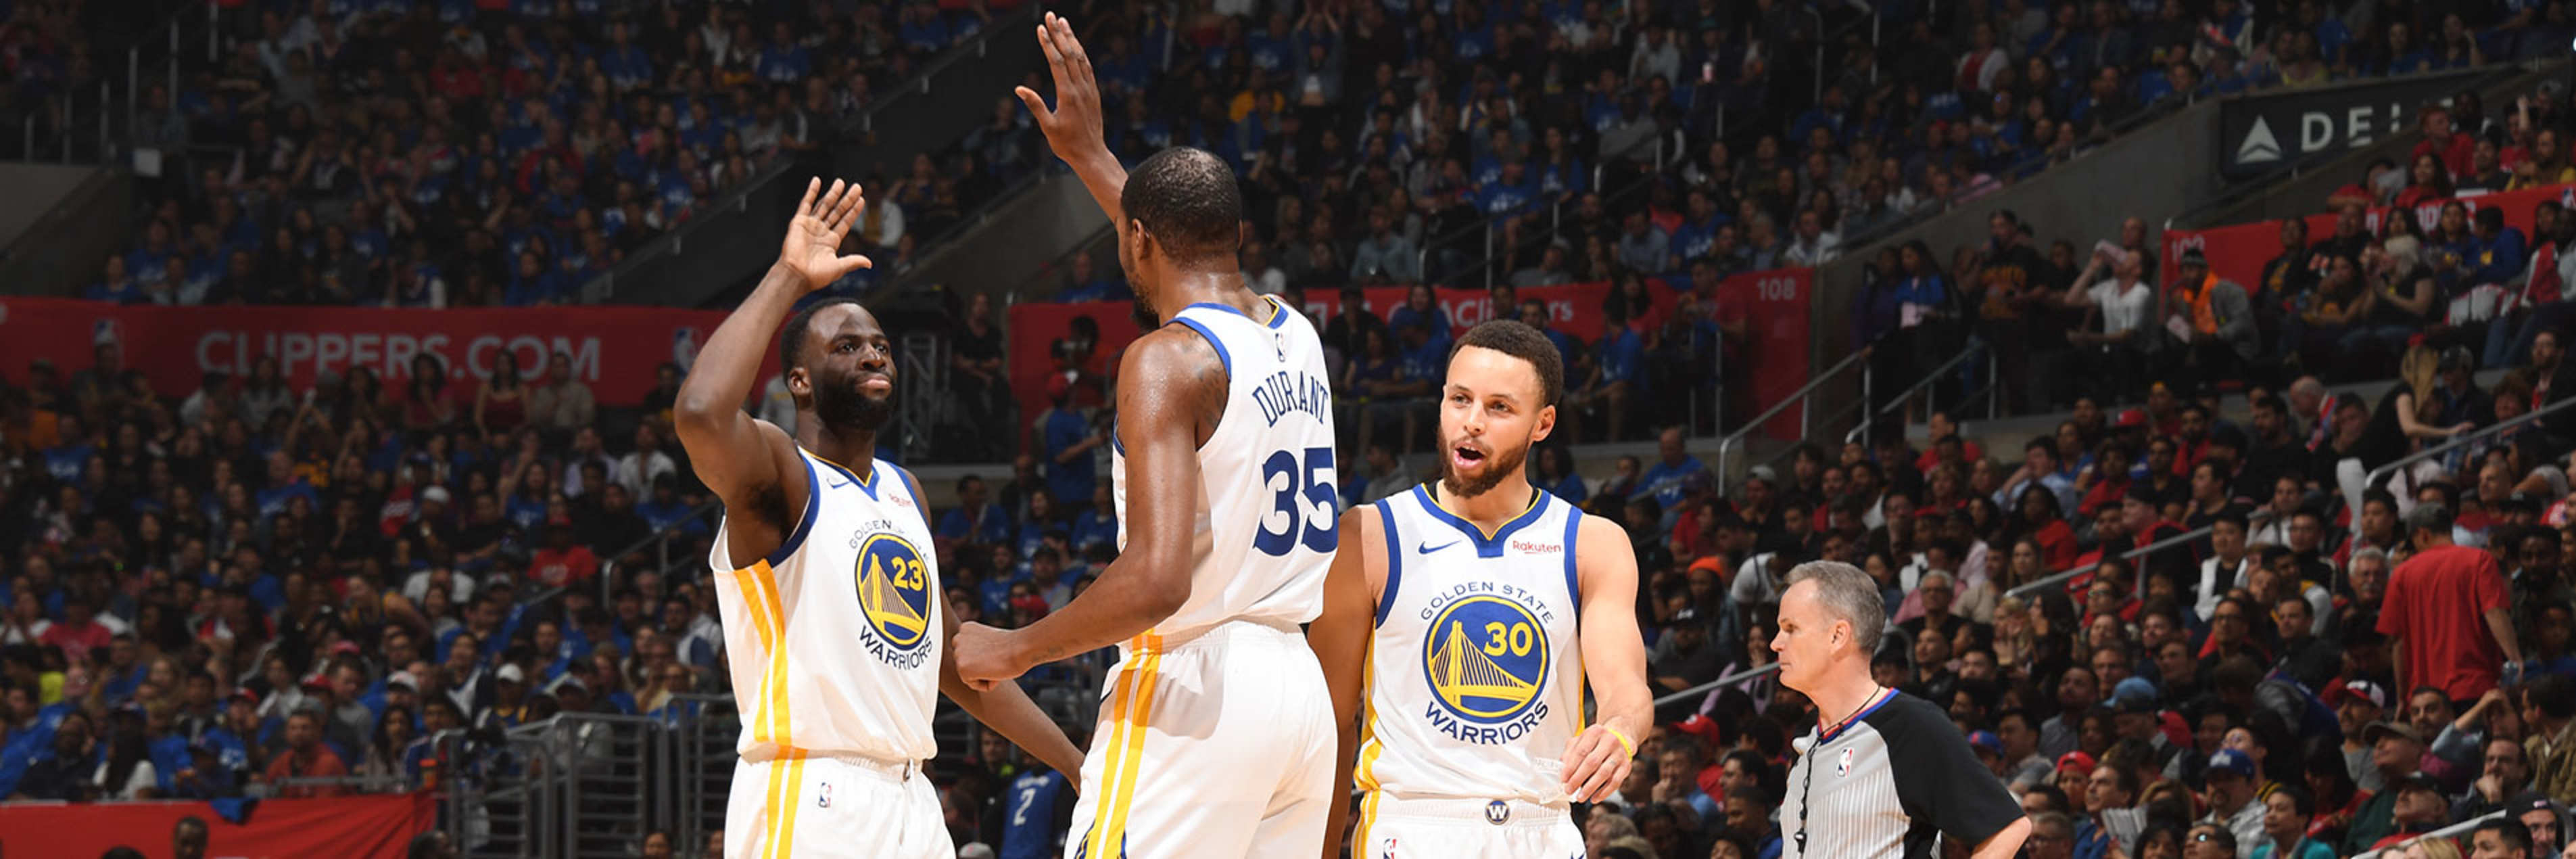 002a96b5f9e9 Durant Shines In Game 6 Victory